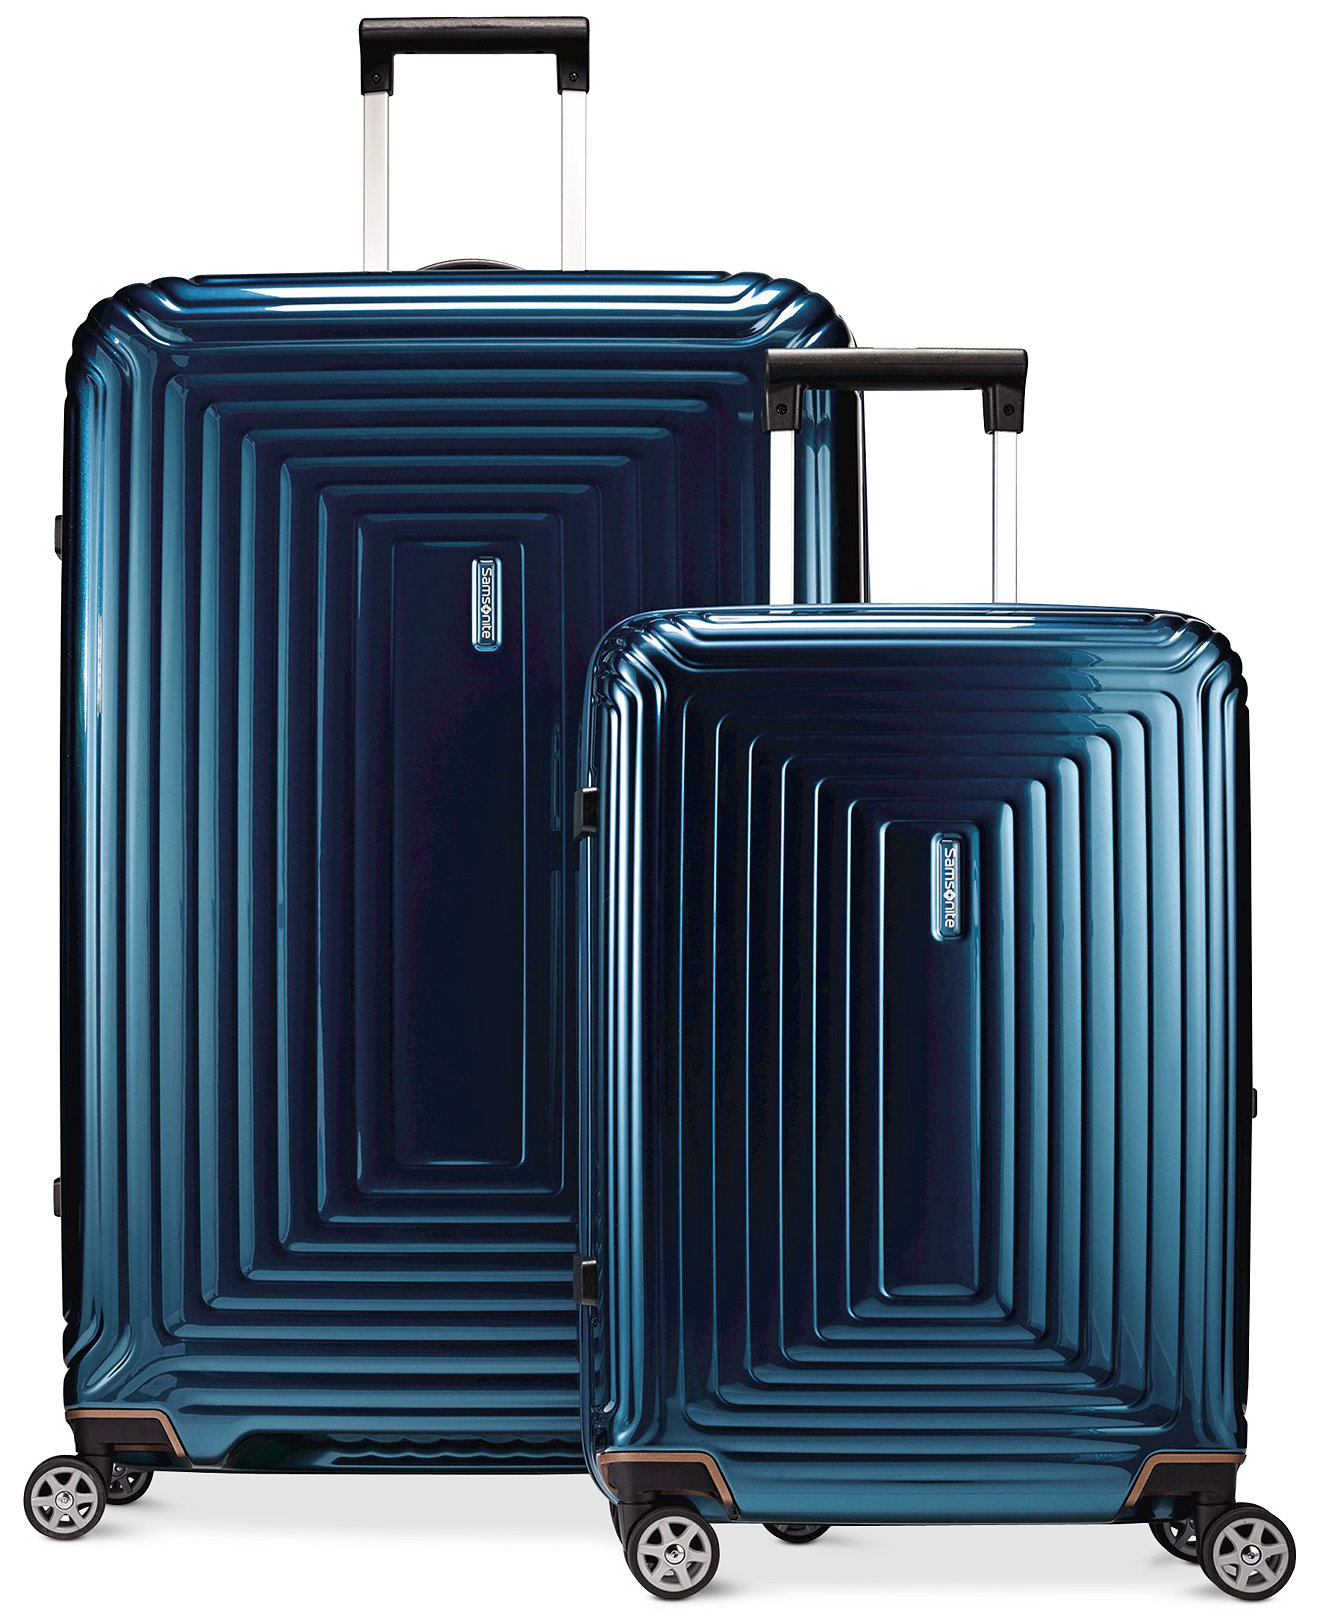 Samsonite Luggage Sets On Sale | Luggage And Suitcases